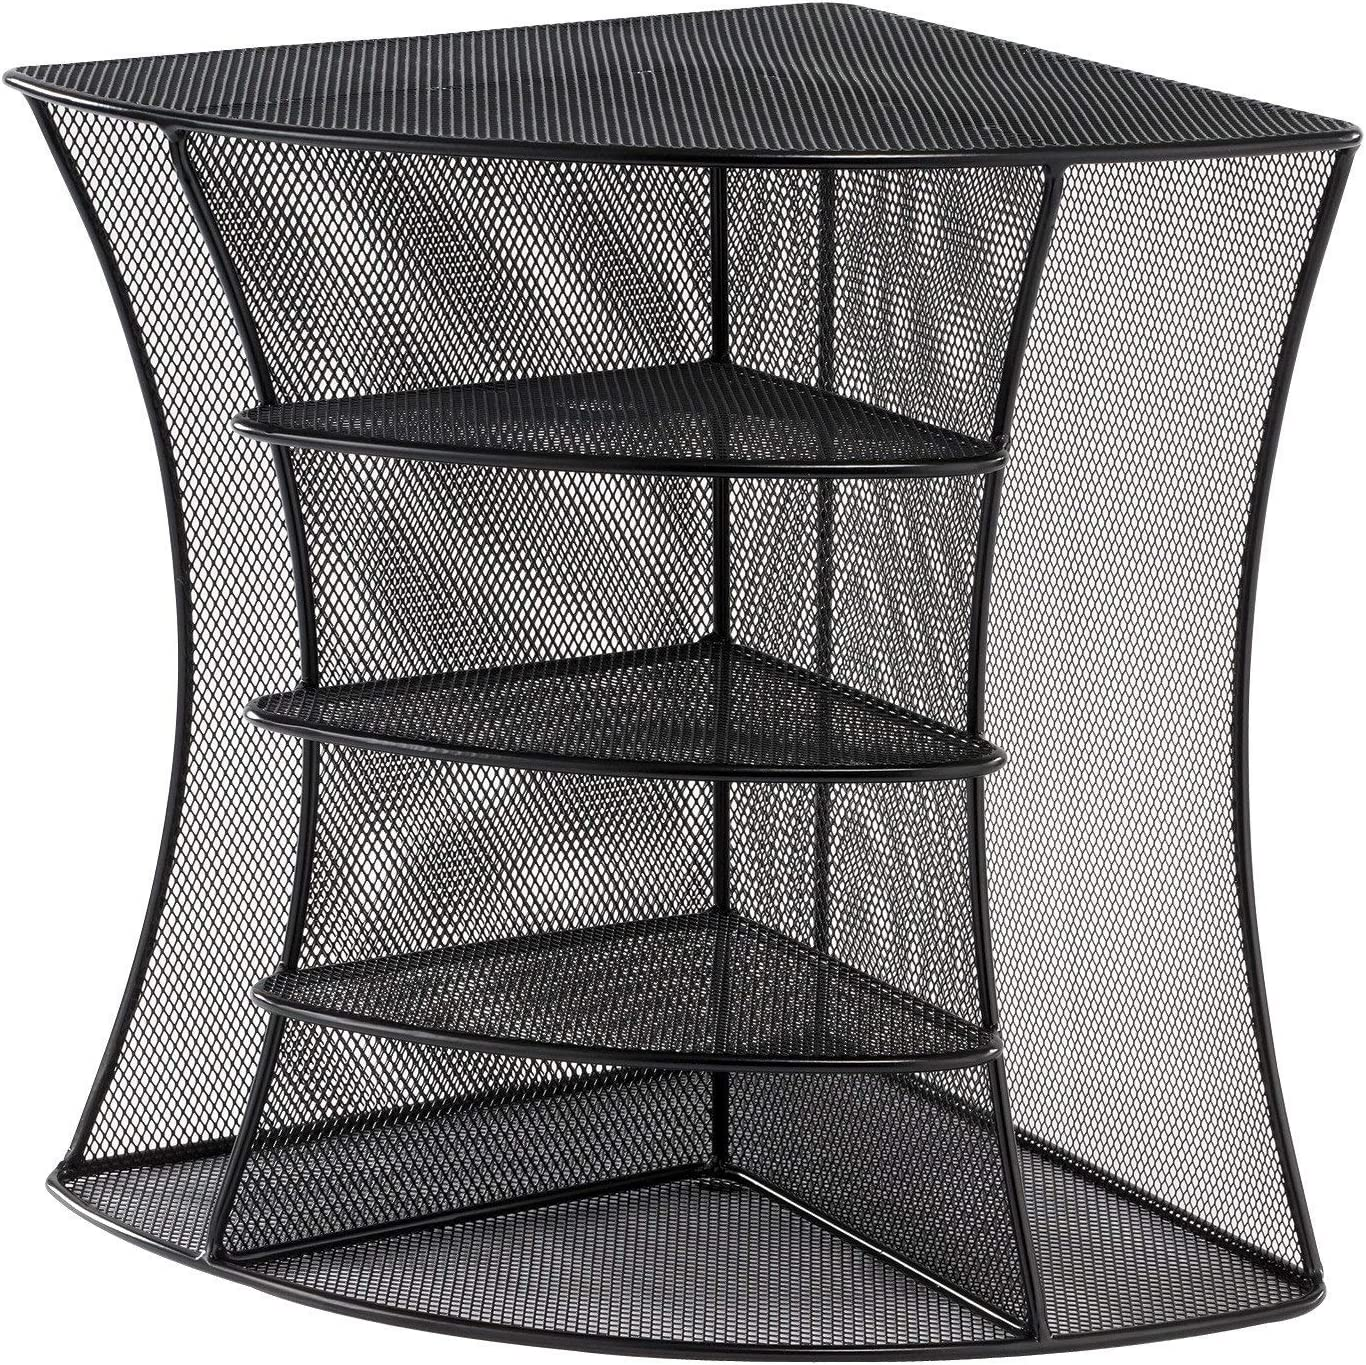 Safco Products Onyx Mesh Corner Organizer 3261BL, Black Powder Coat Finish, Durable Steel Mesh Construction, Space-Saving Functionality : Literature Organizers : Office Products